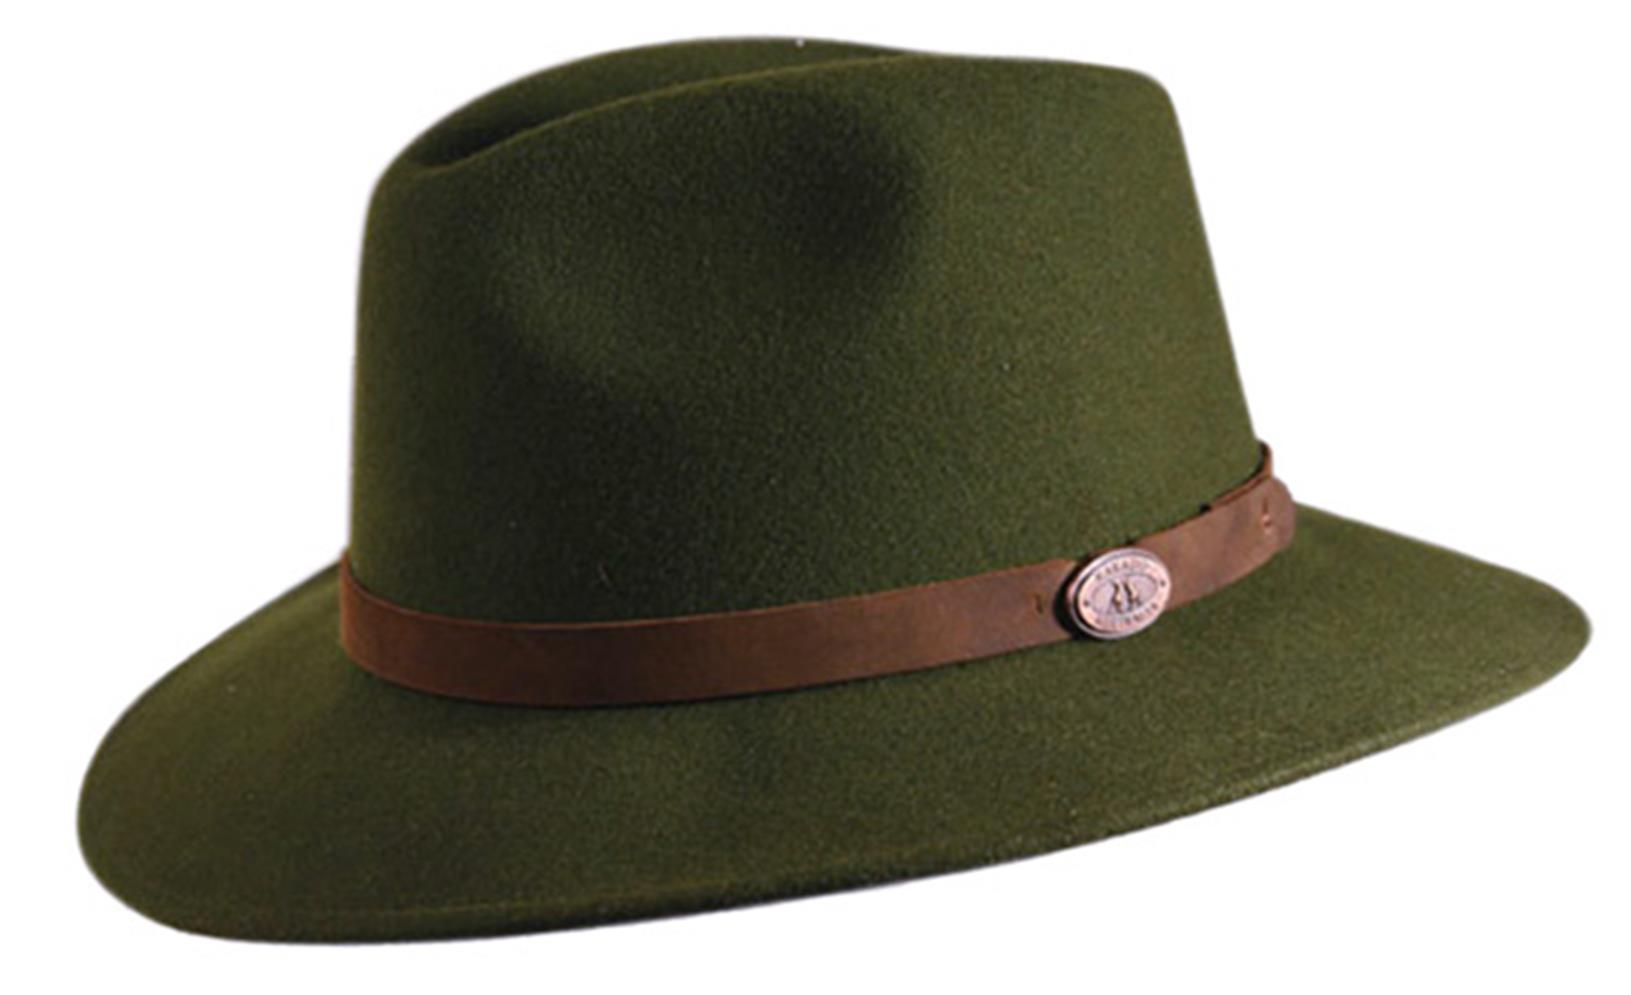 Clancy Wool Felt Hat In Loden Green